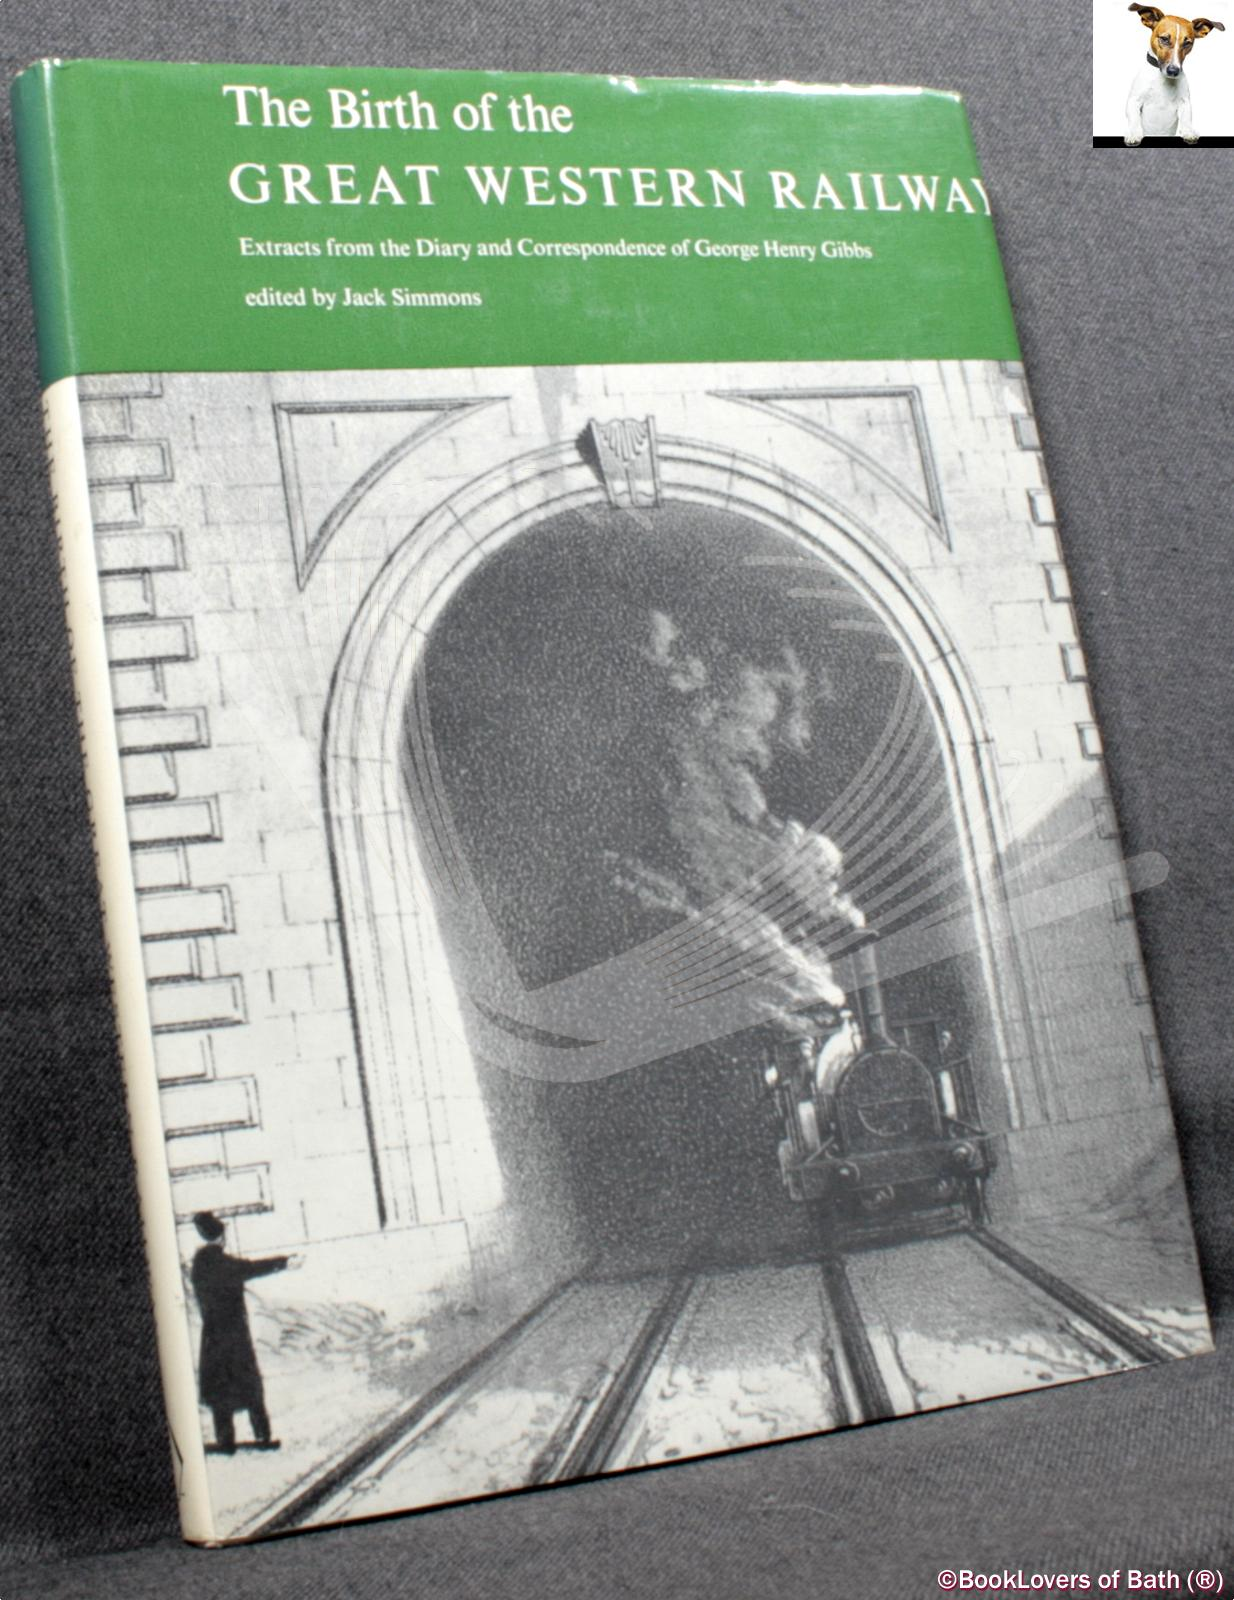 The Birth of the Great Western Railway: Extracts from the Diary and Correspondence of George Henry Gibbs - Edited by Jack Simmons